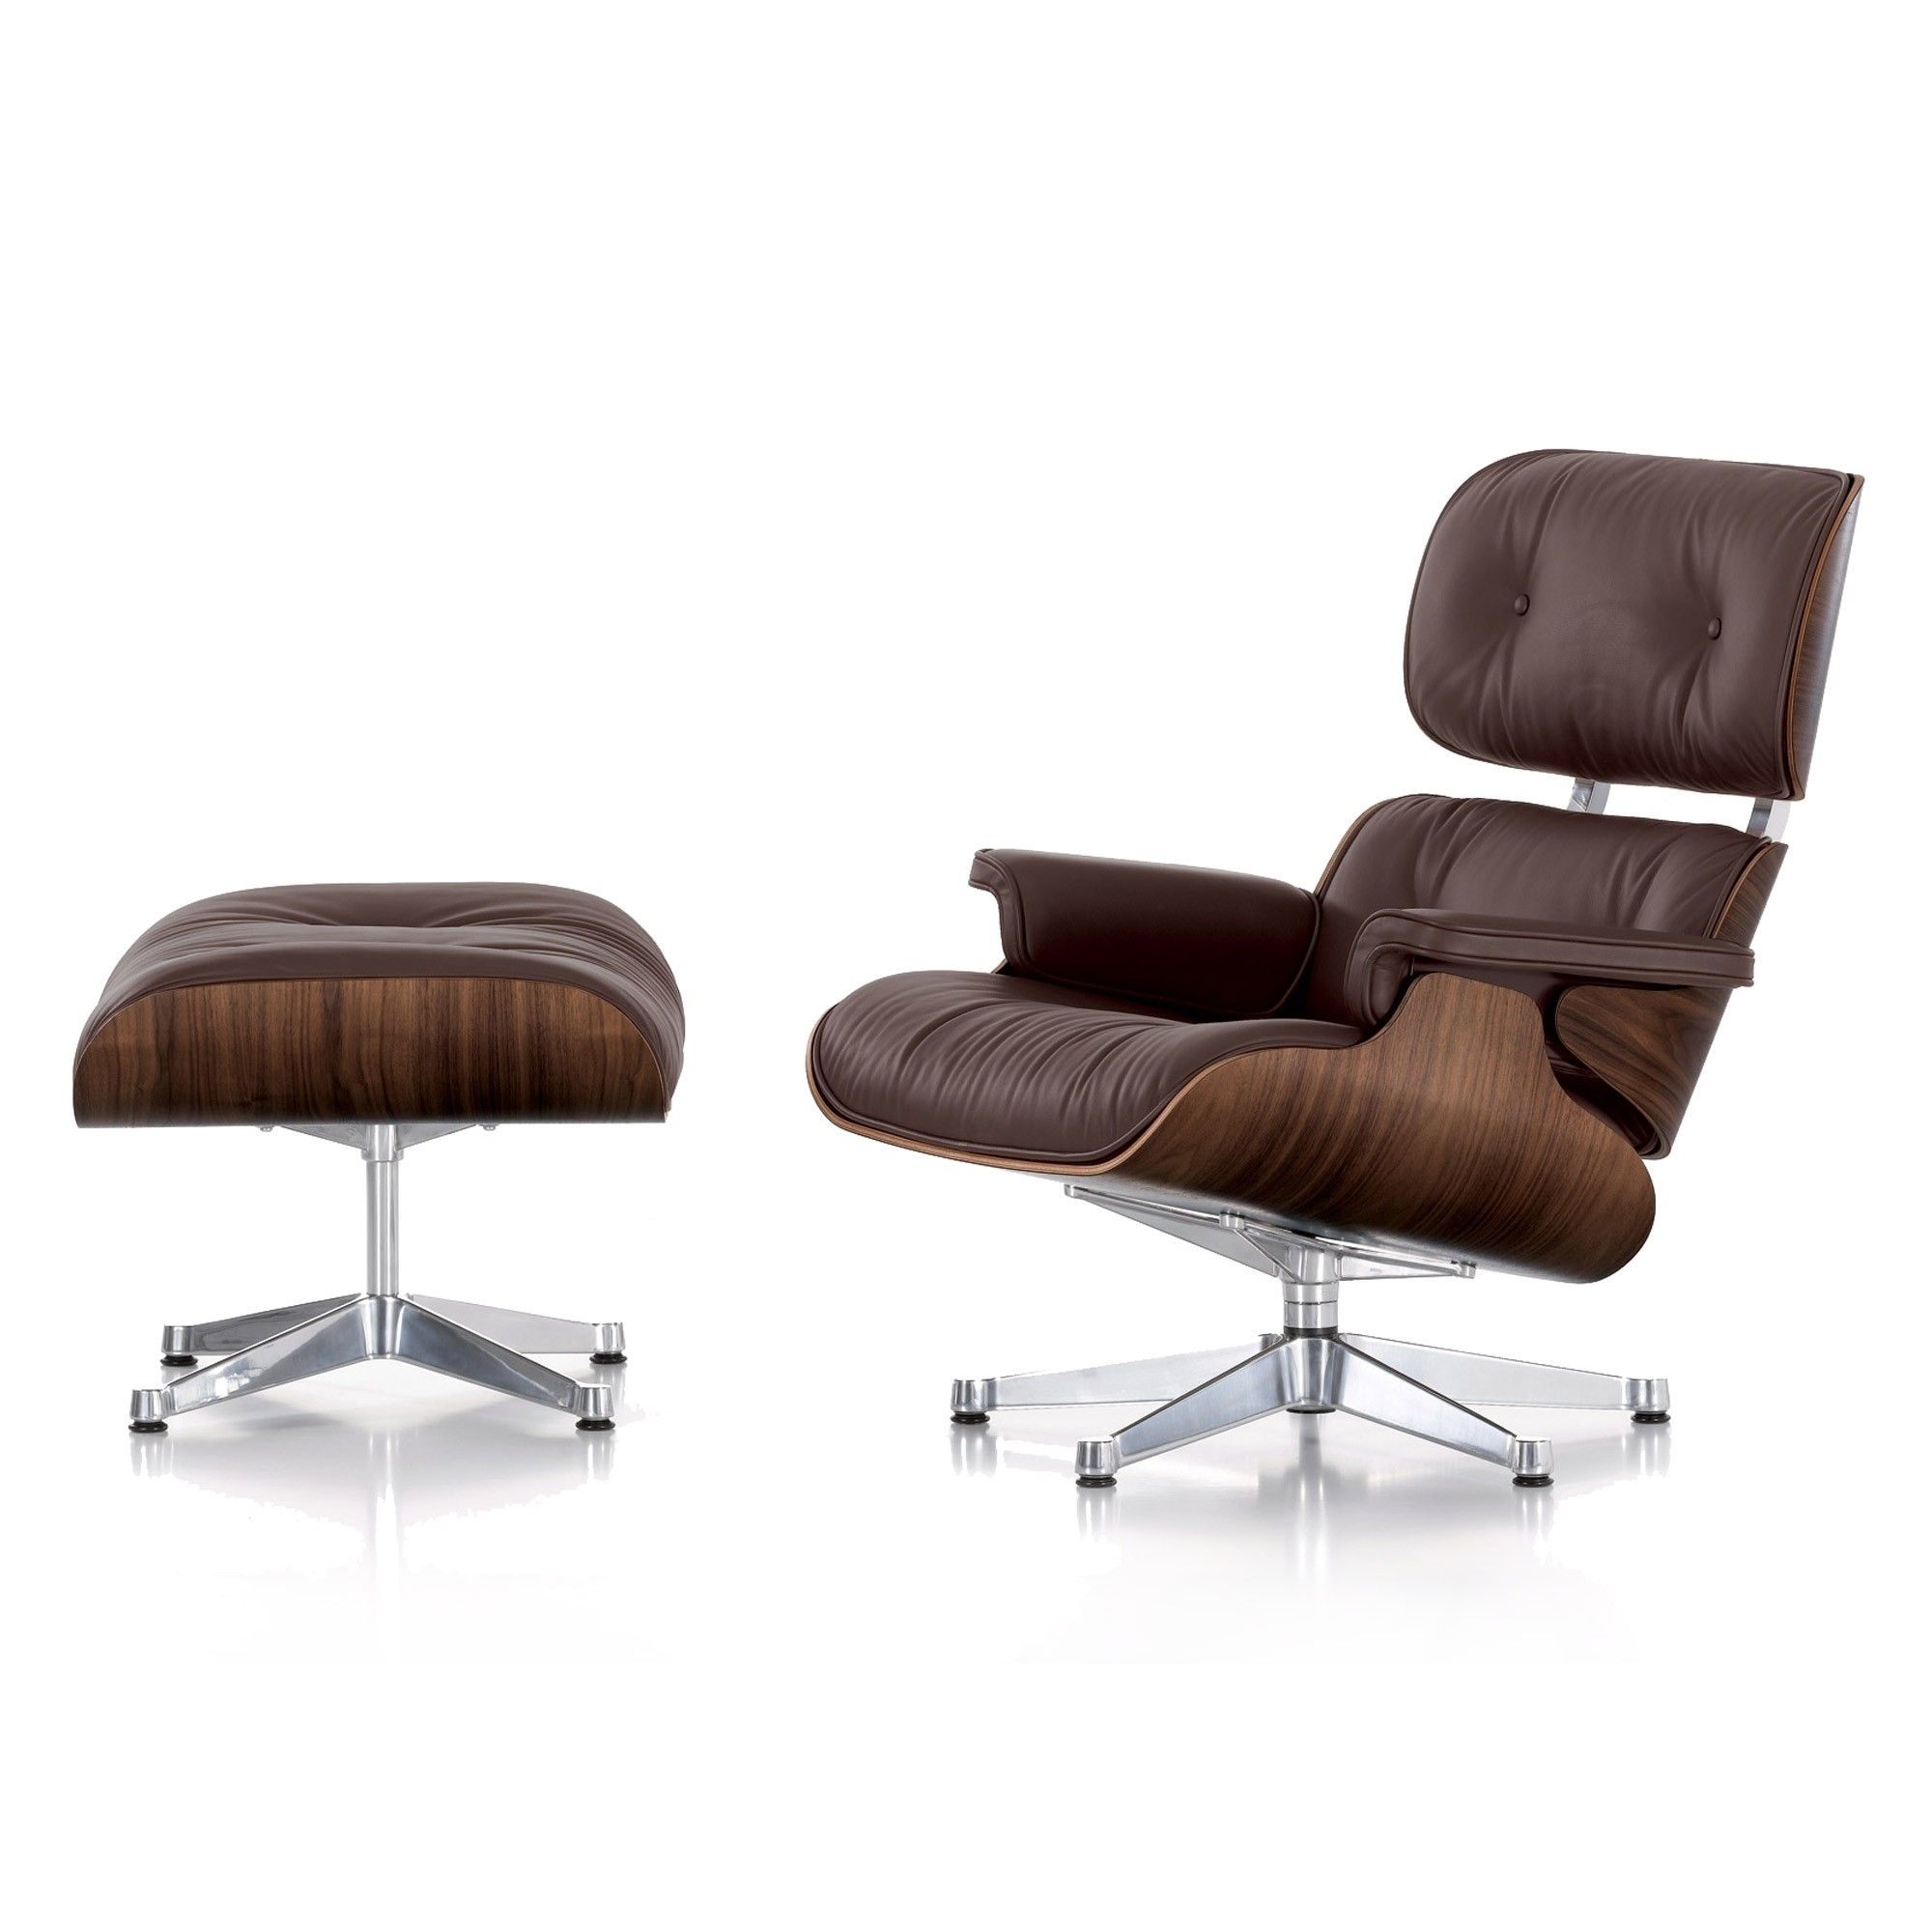 Chaise Lounge Chairs With Ottoman For Best And Newest Lounge Chair : Ottoman For Sale Eames Lounge Chair Ottoman Replica (View 10 of 15)